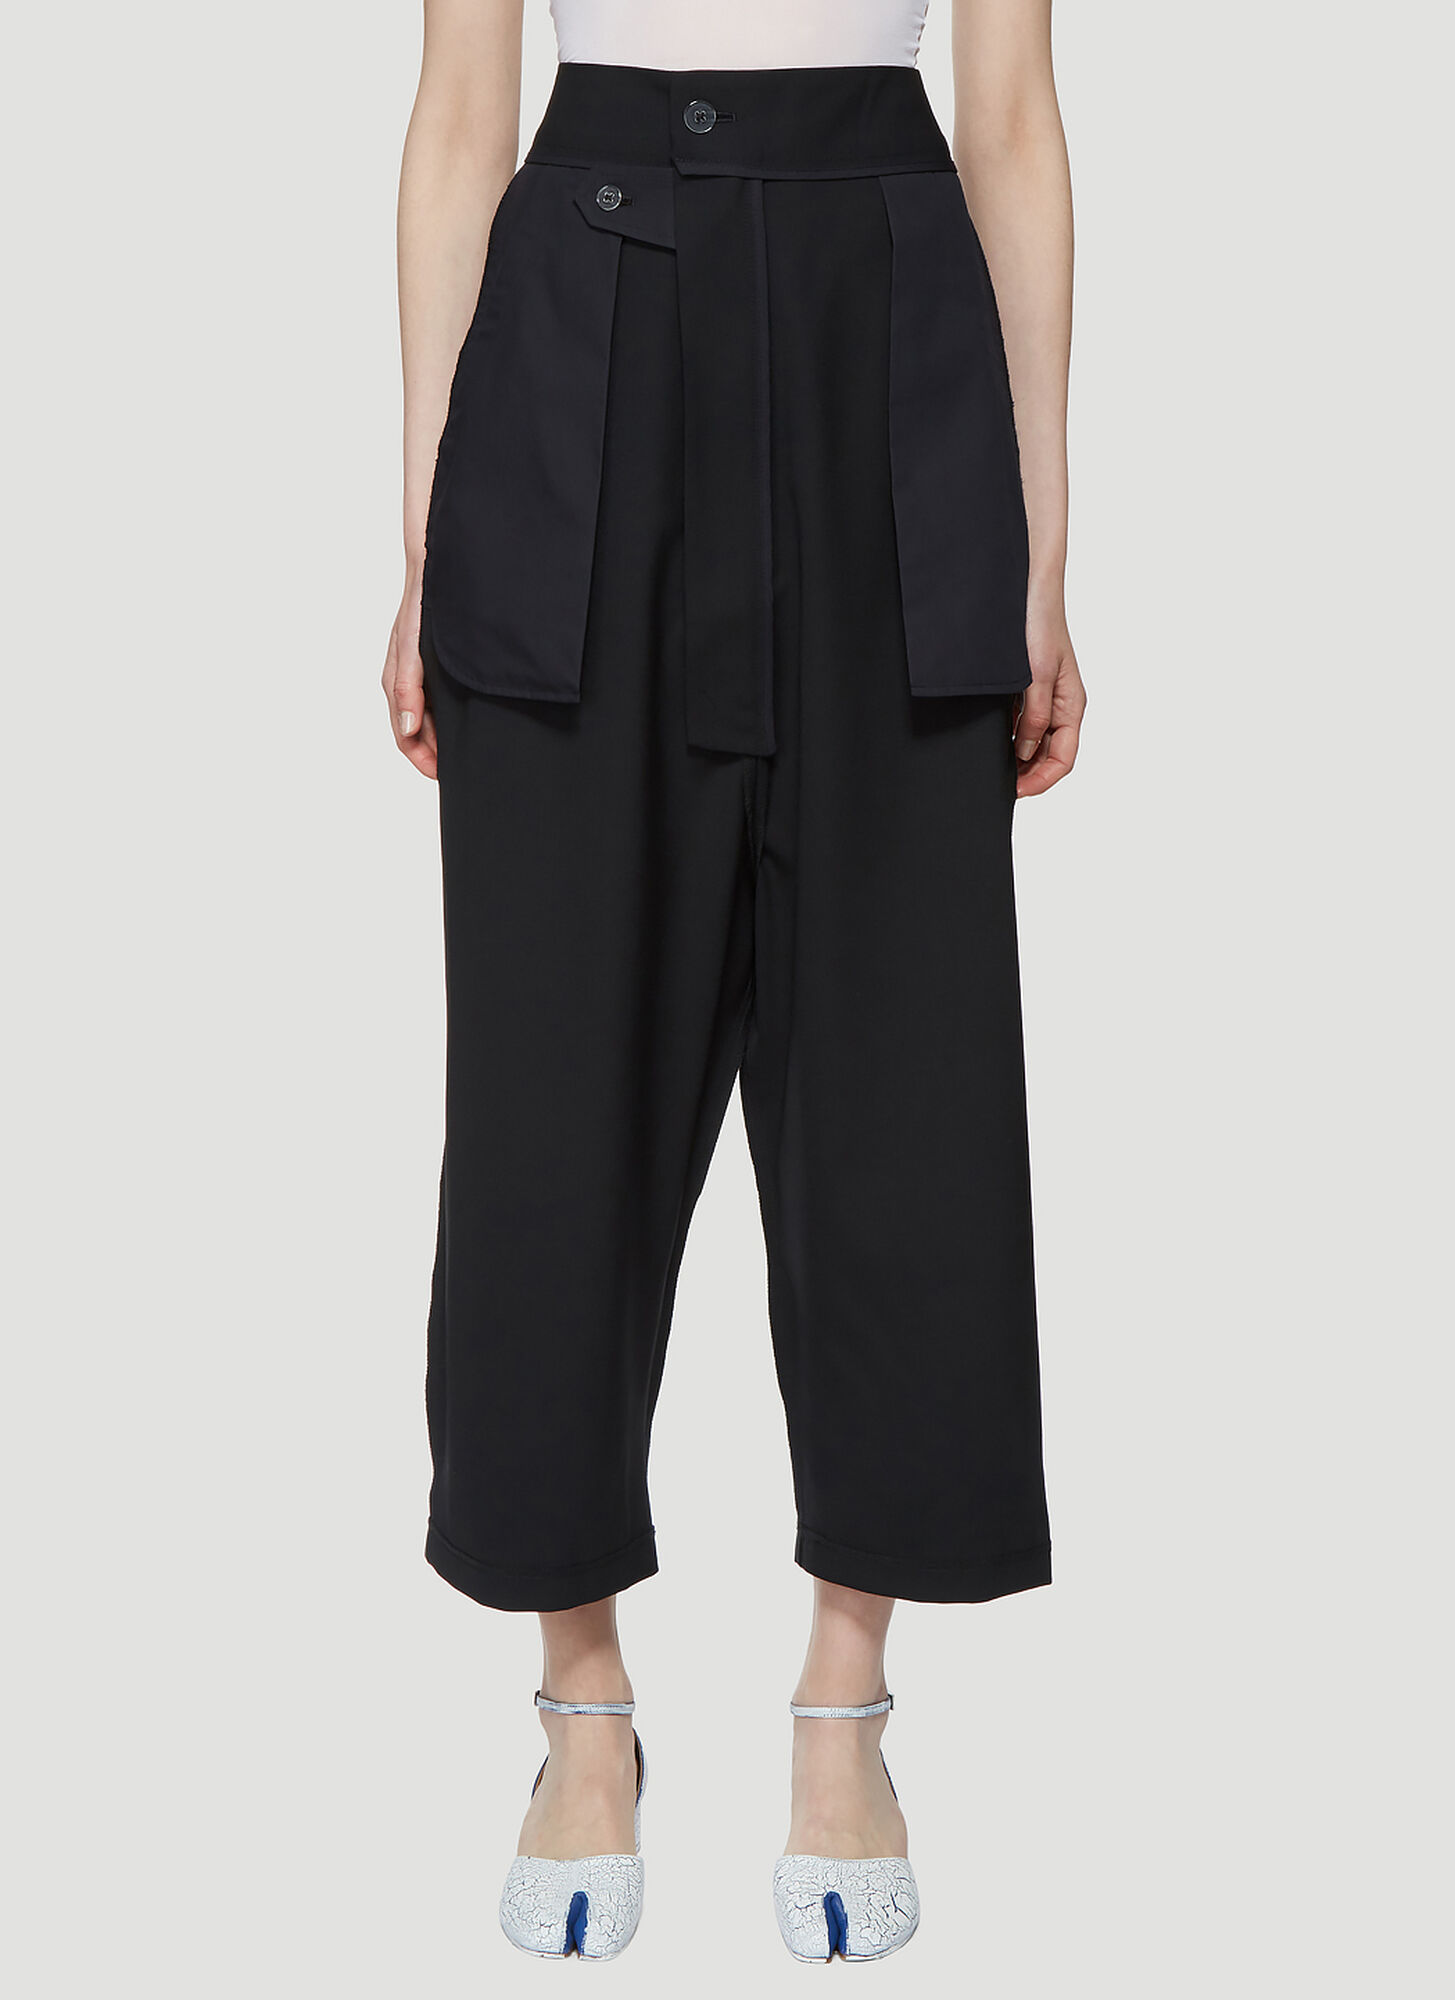 Vaquera Inside Out Pants in Black